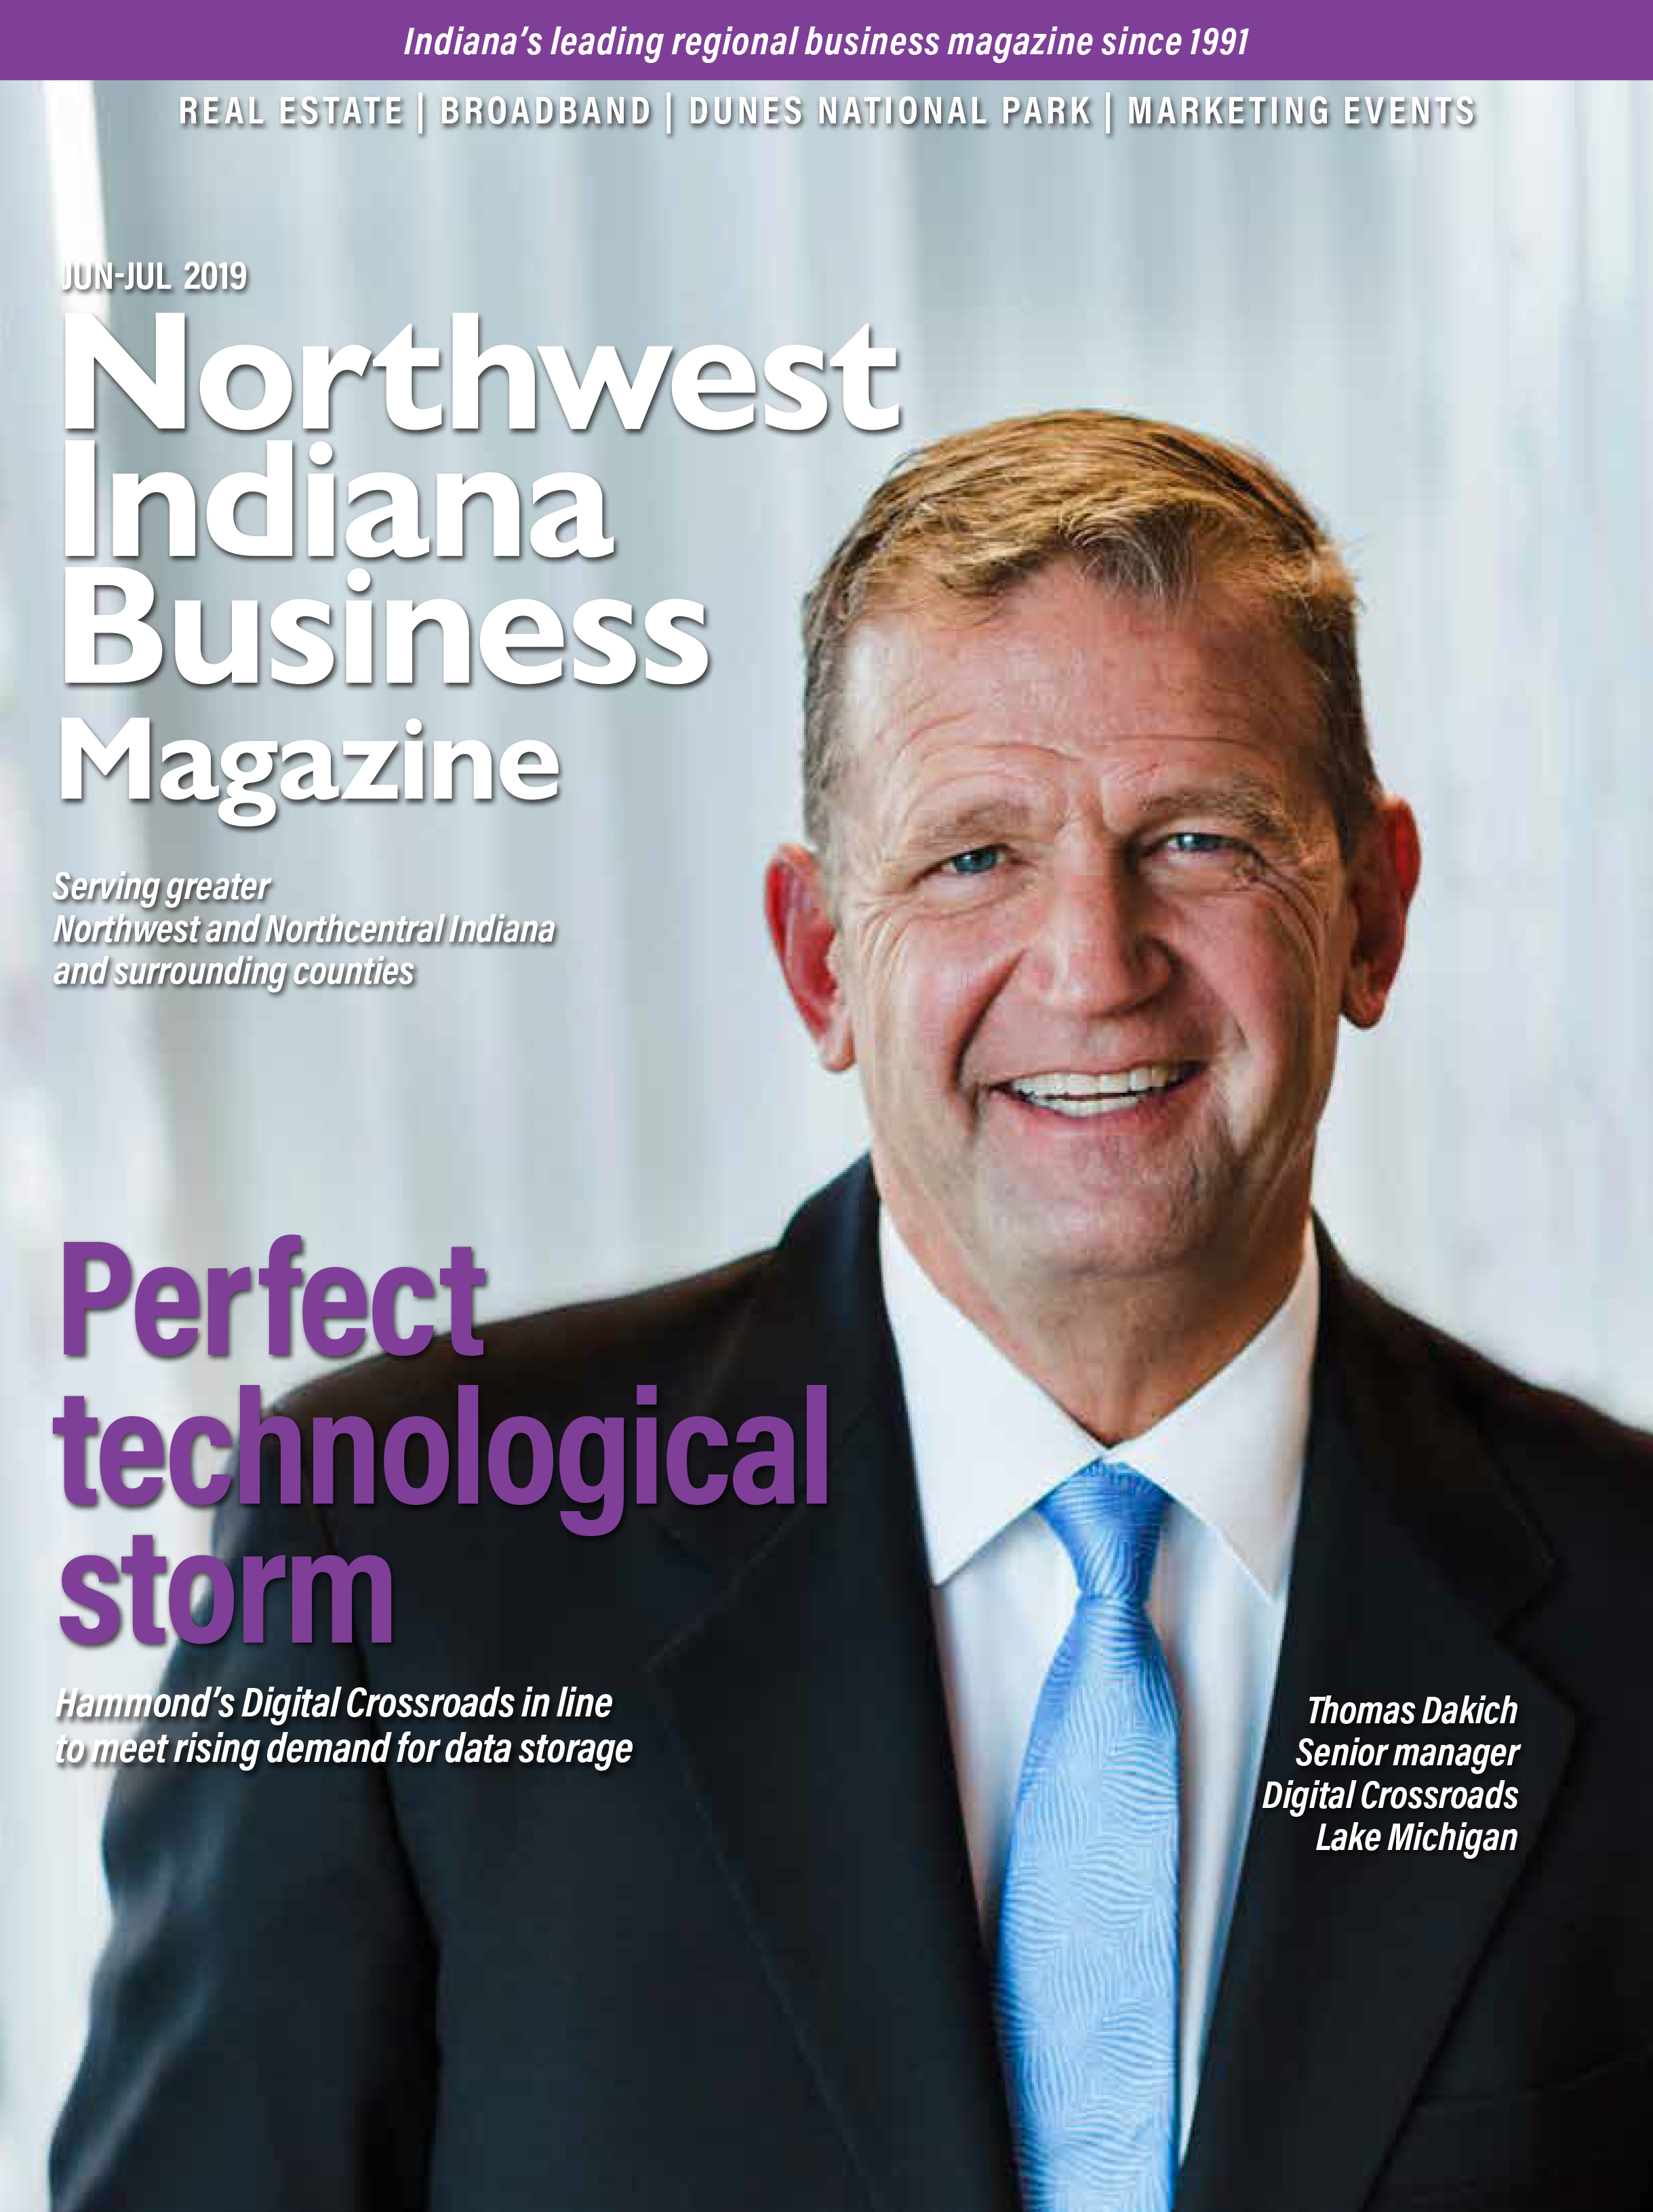 Northwest Indiana Business Magazine Jun-Jul 2019 issue